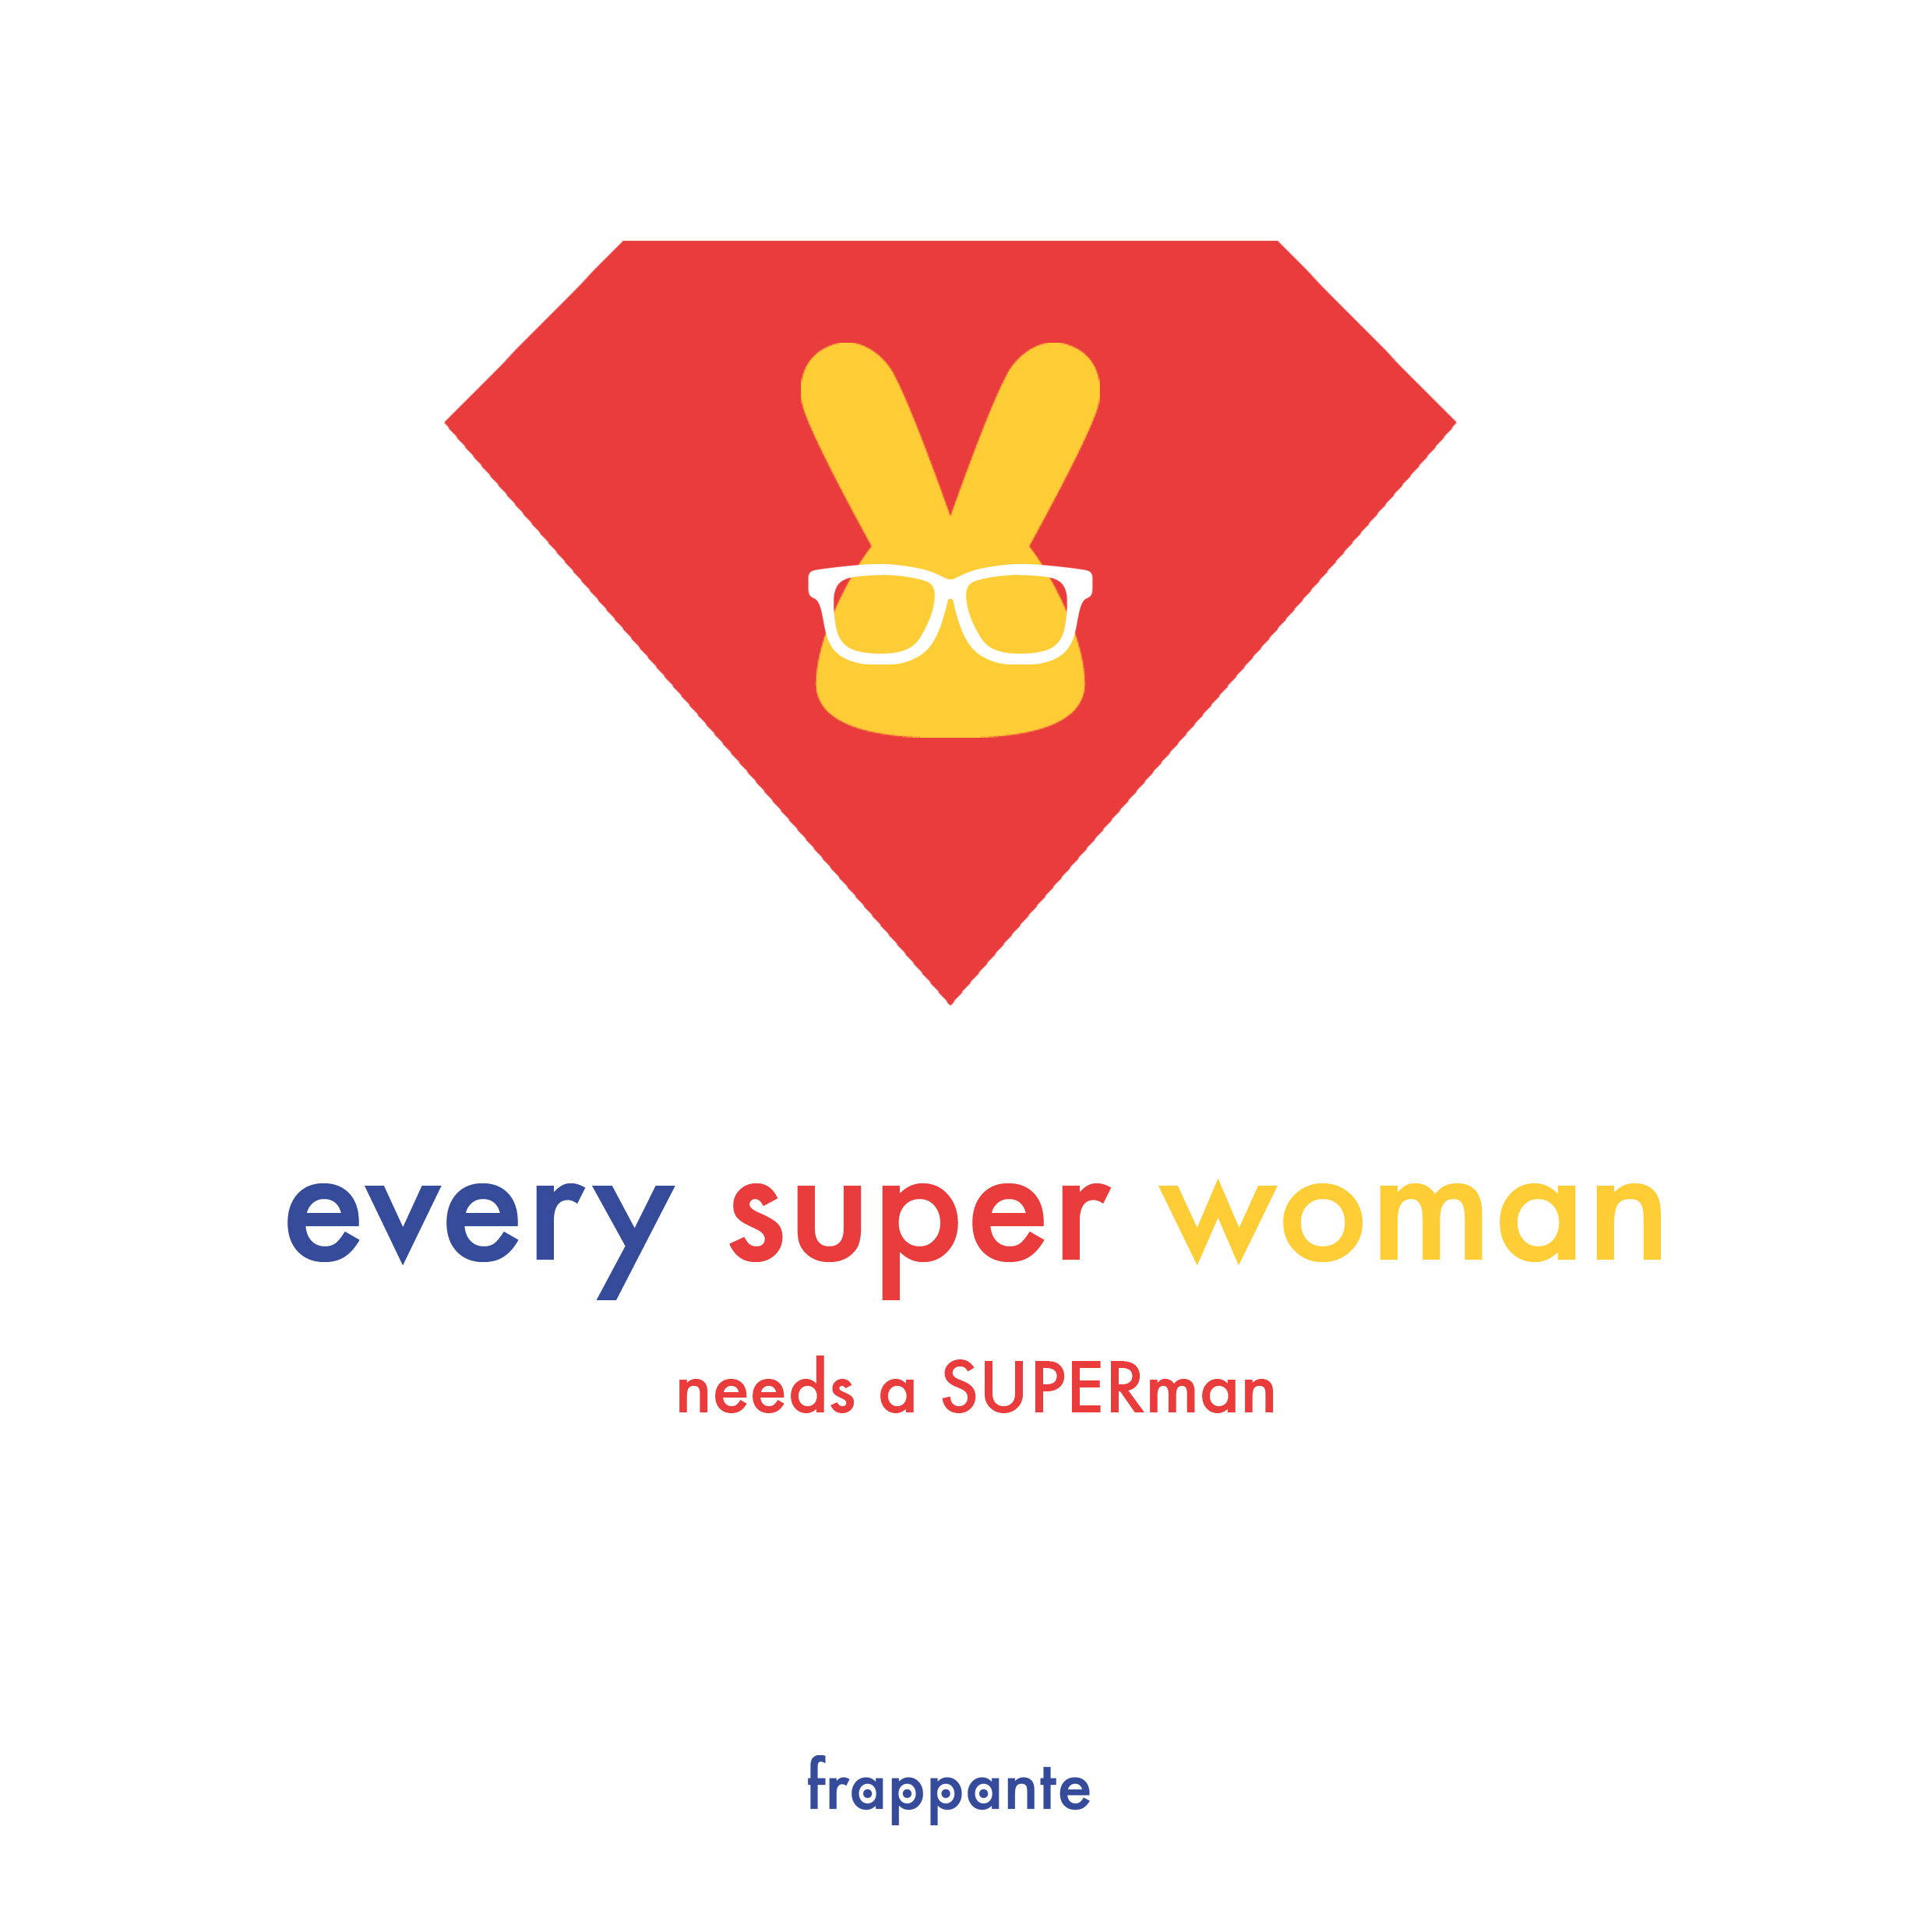 poster_every super woman needs a superman.jpg